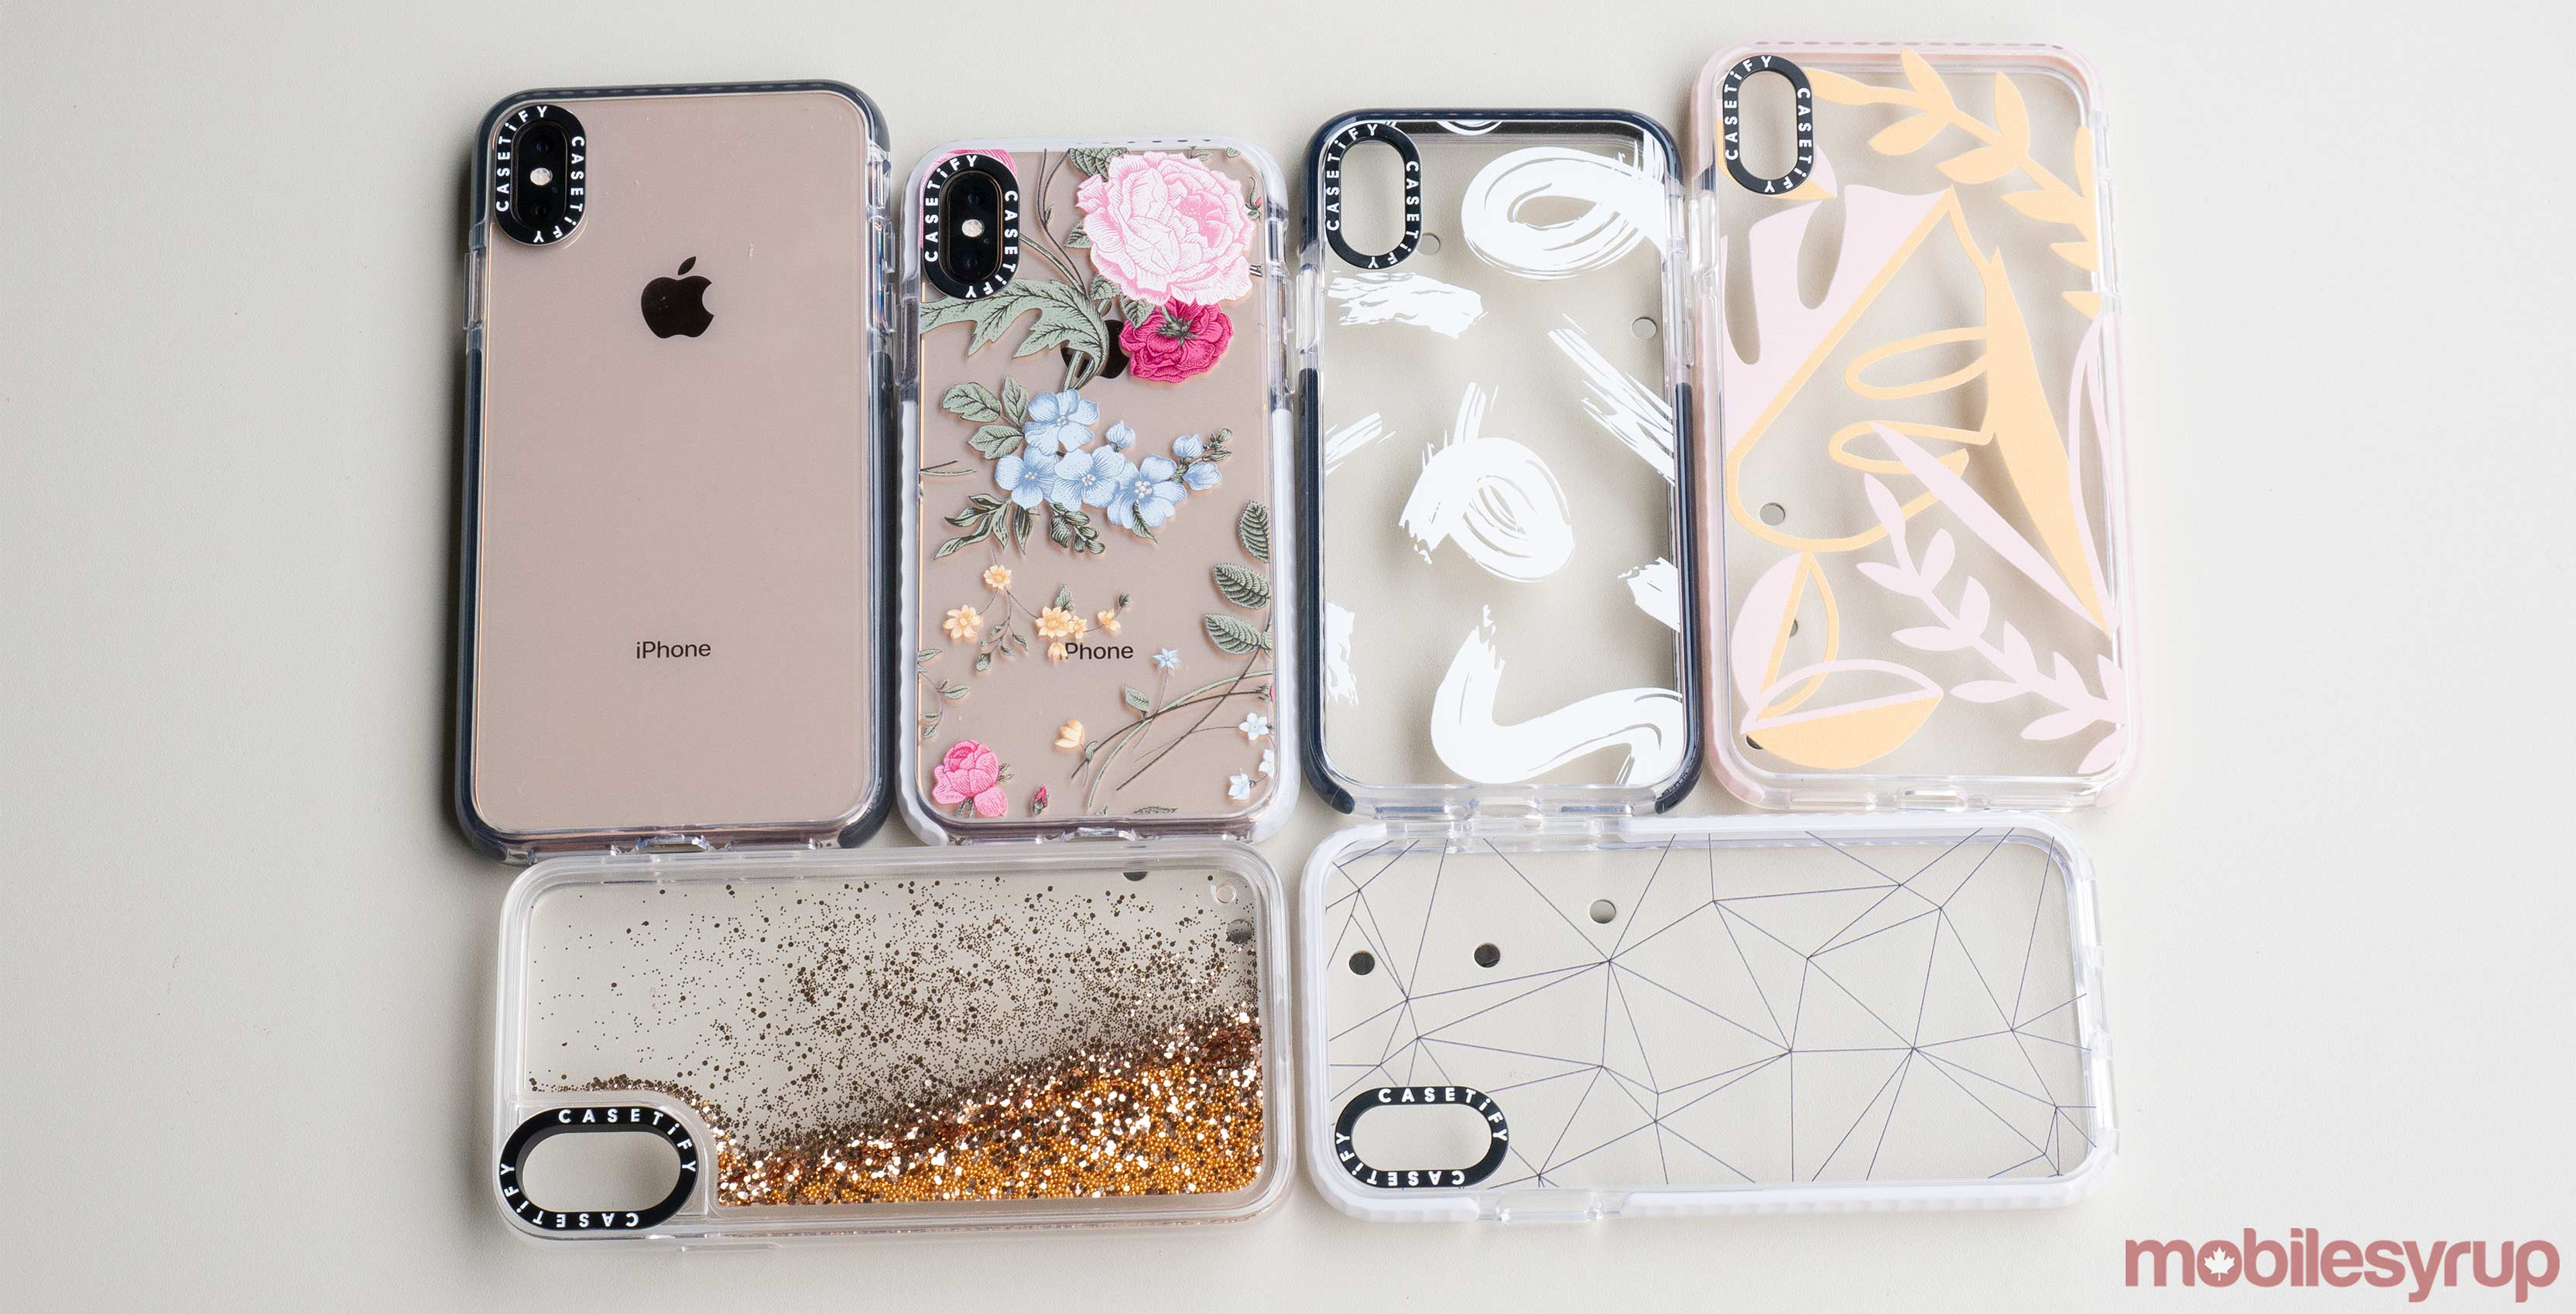 online retailer 28c38 74e2a Here are Casetify's top iPhone XS and iPhone XS Max cases